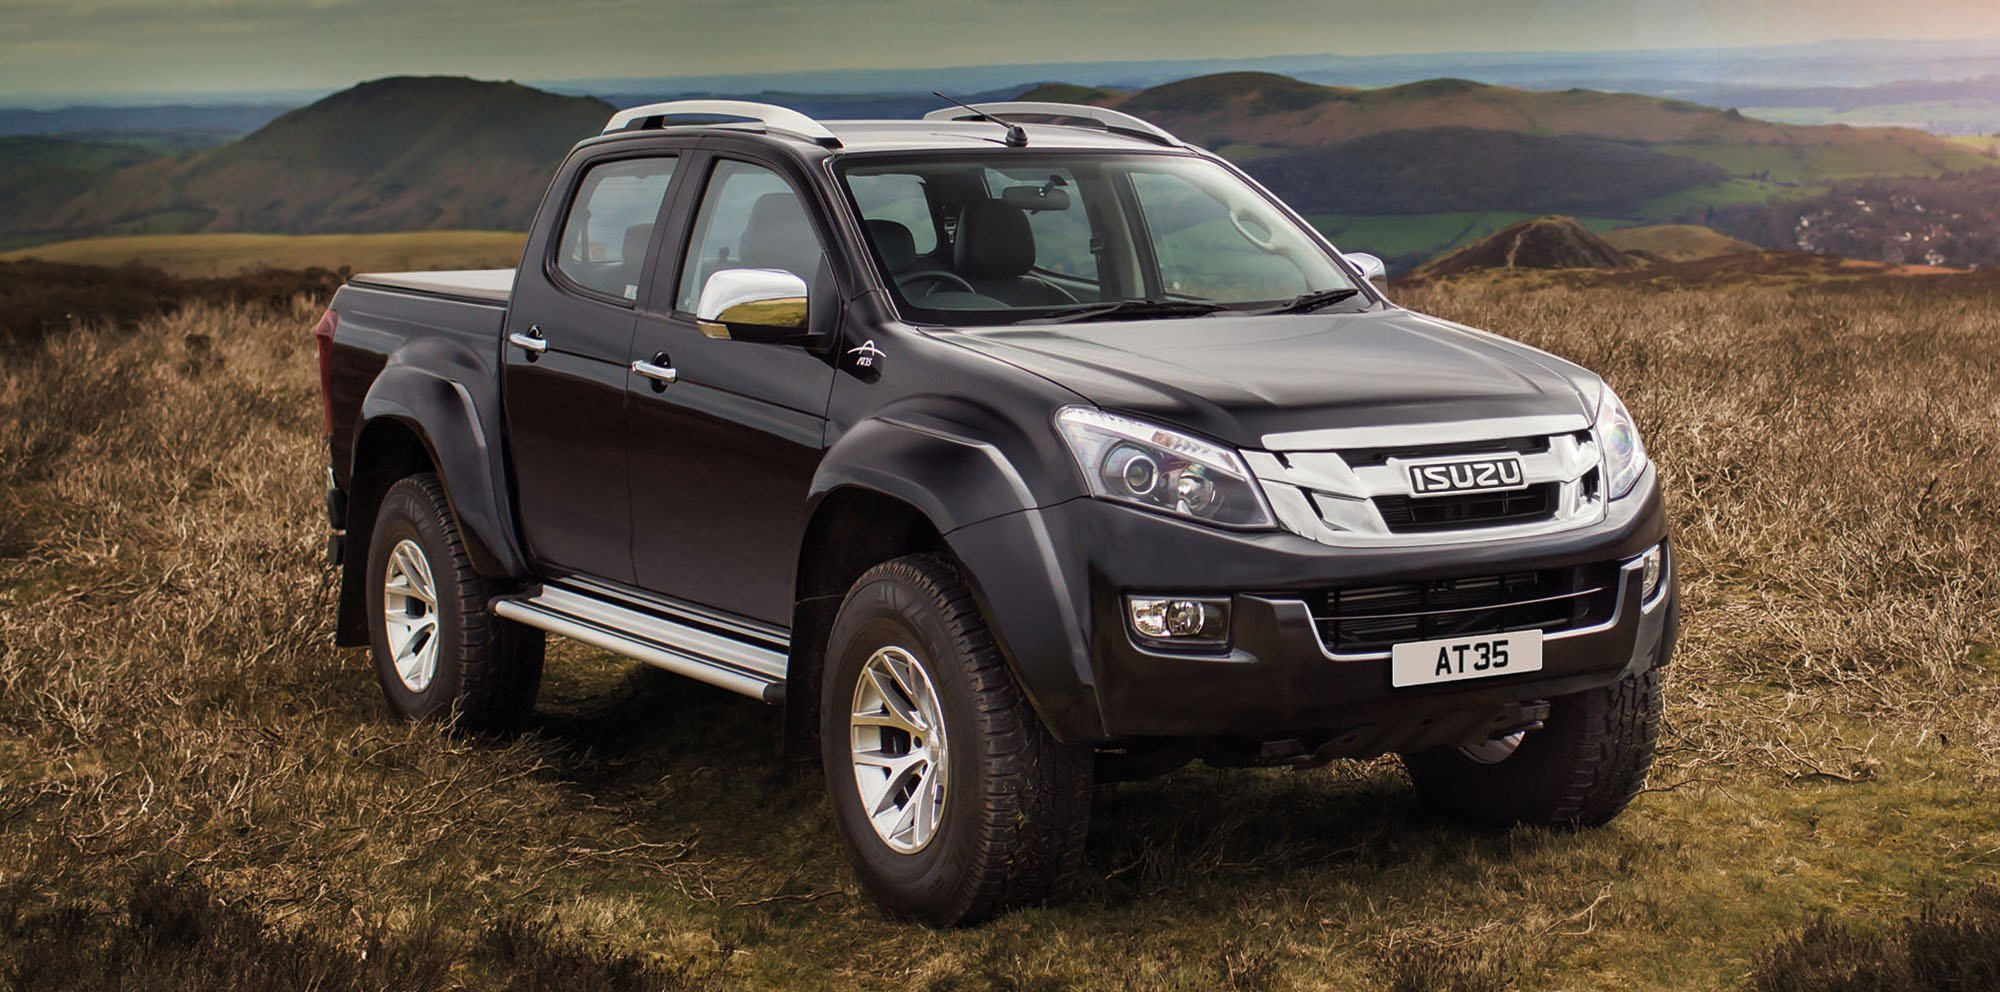 hight resolution of isuzu is launching the most extreme d max to bolster its already comprehensive model line up the new isuzu d max arctic trucks at35 is engineered to excel